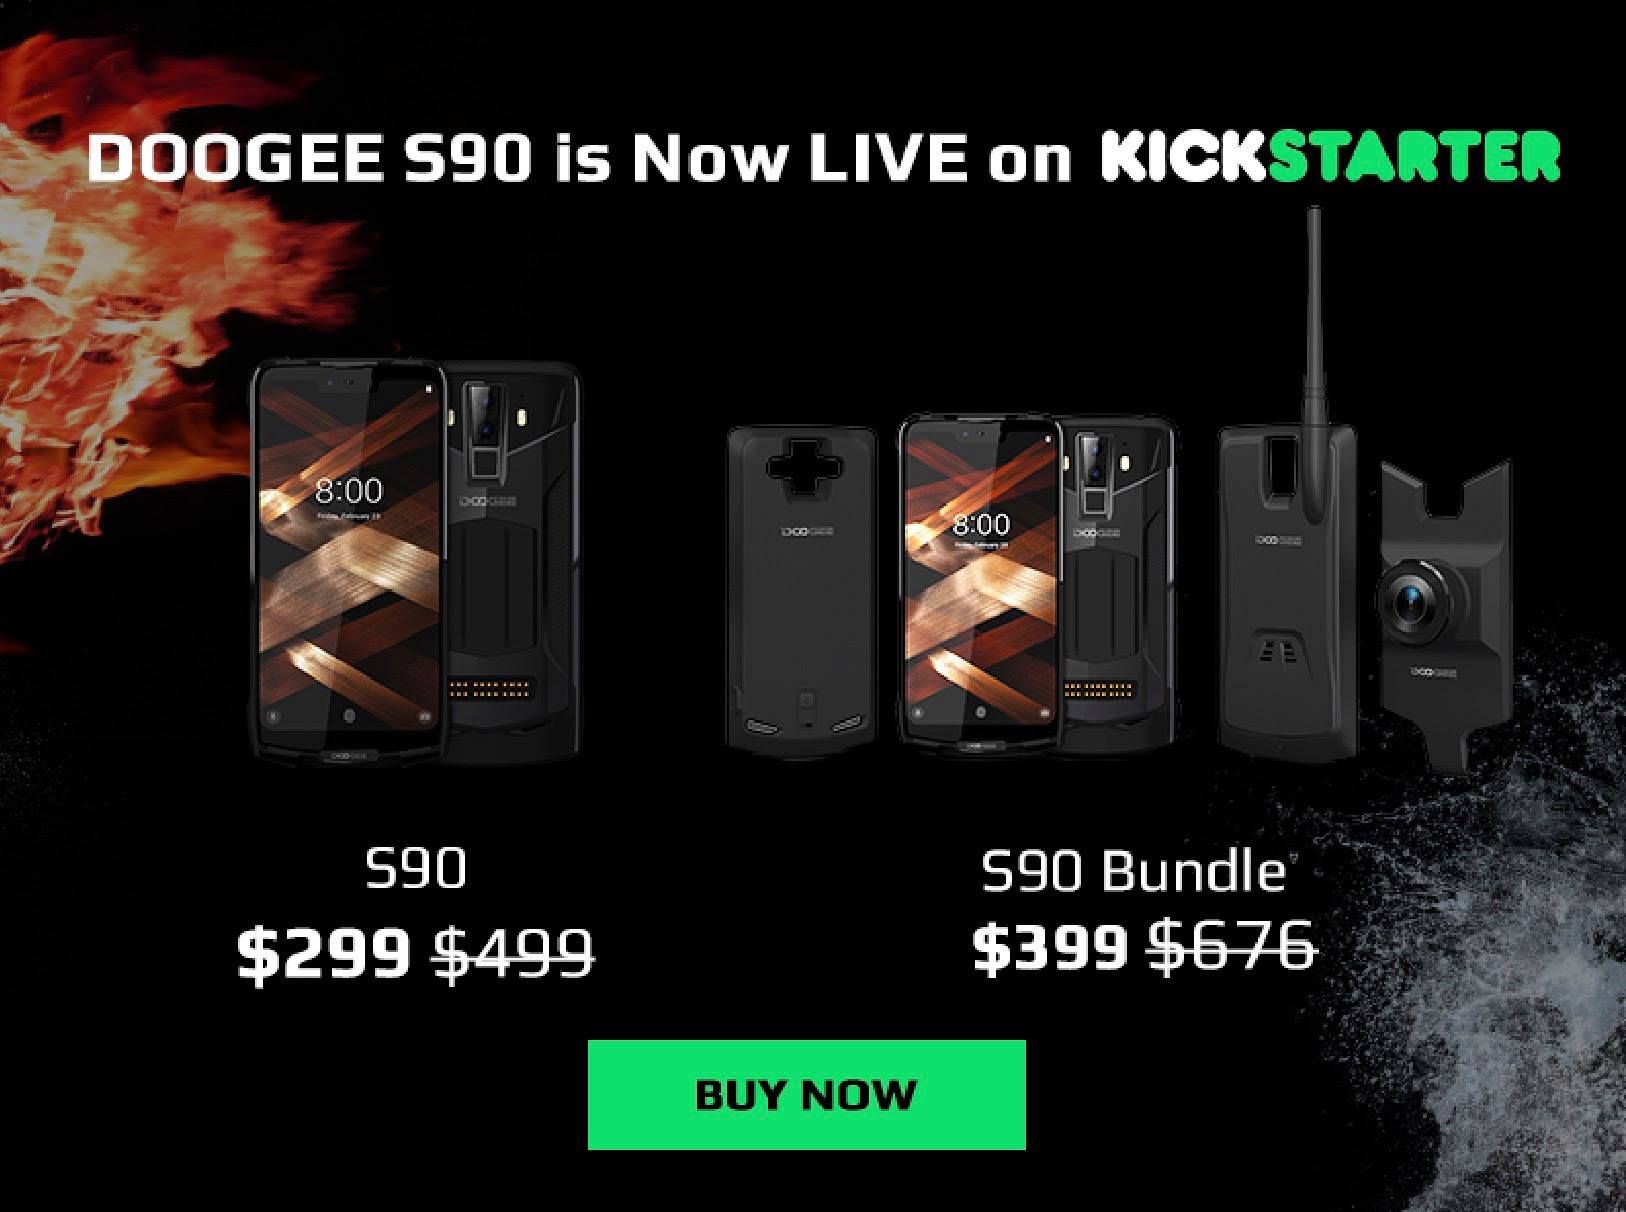 📣📣Hey guys, we are happy to announce the Most Versatile Unbreakable Smartphone--#doogees90 on #kickstater at 😍299USD.